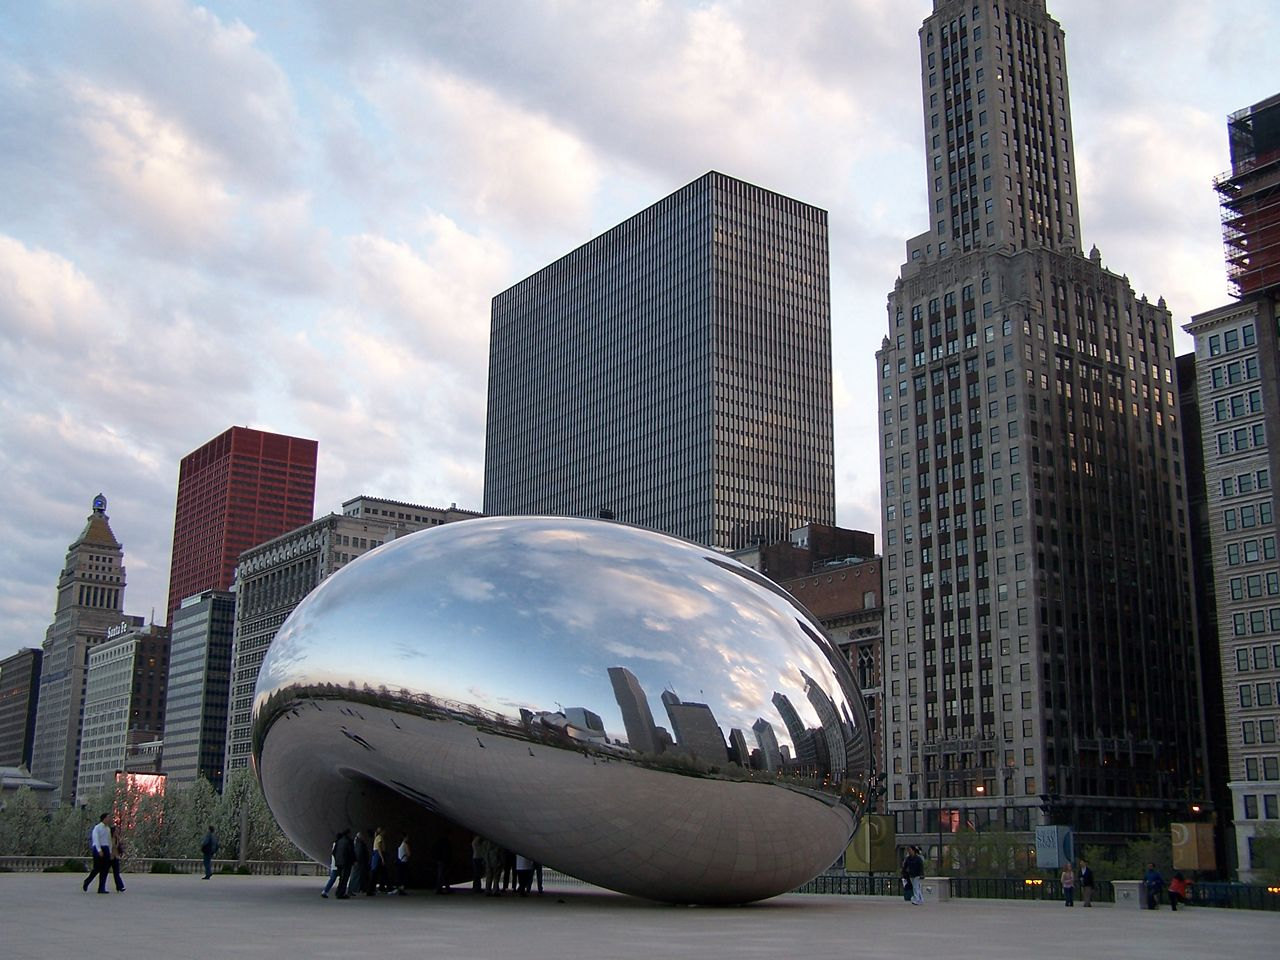 The Bean (Cloud Gate)